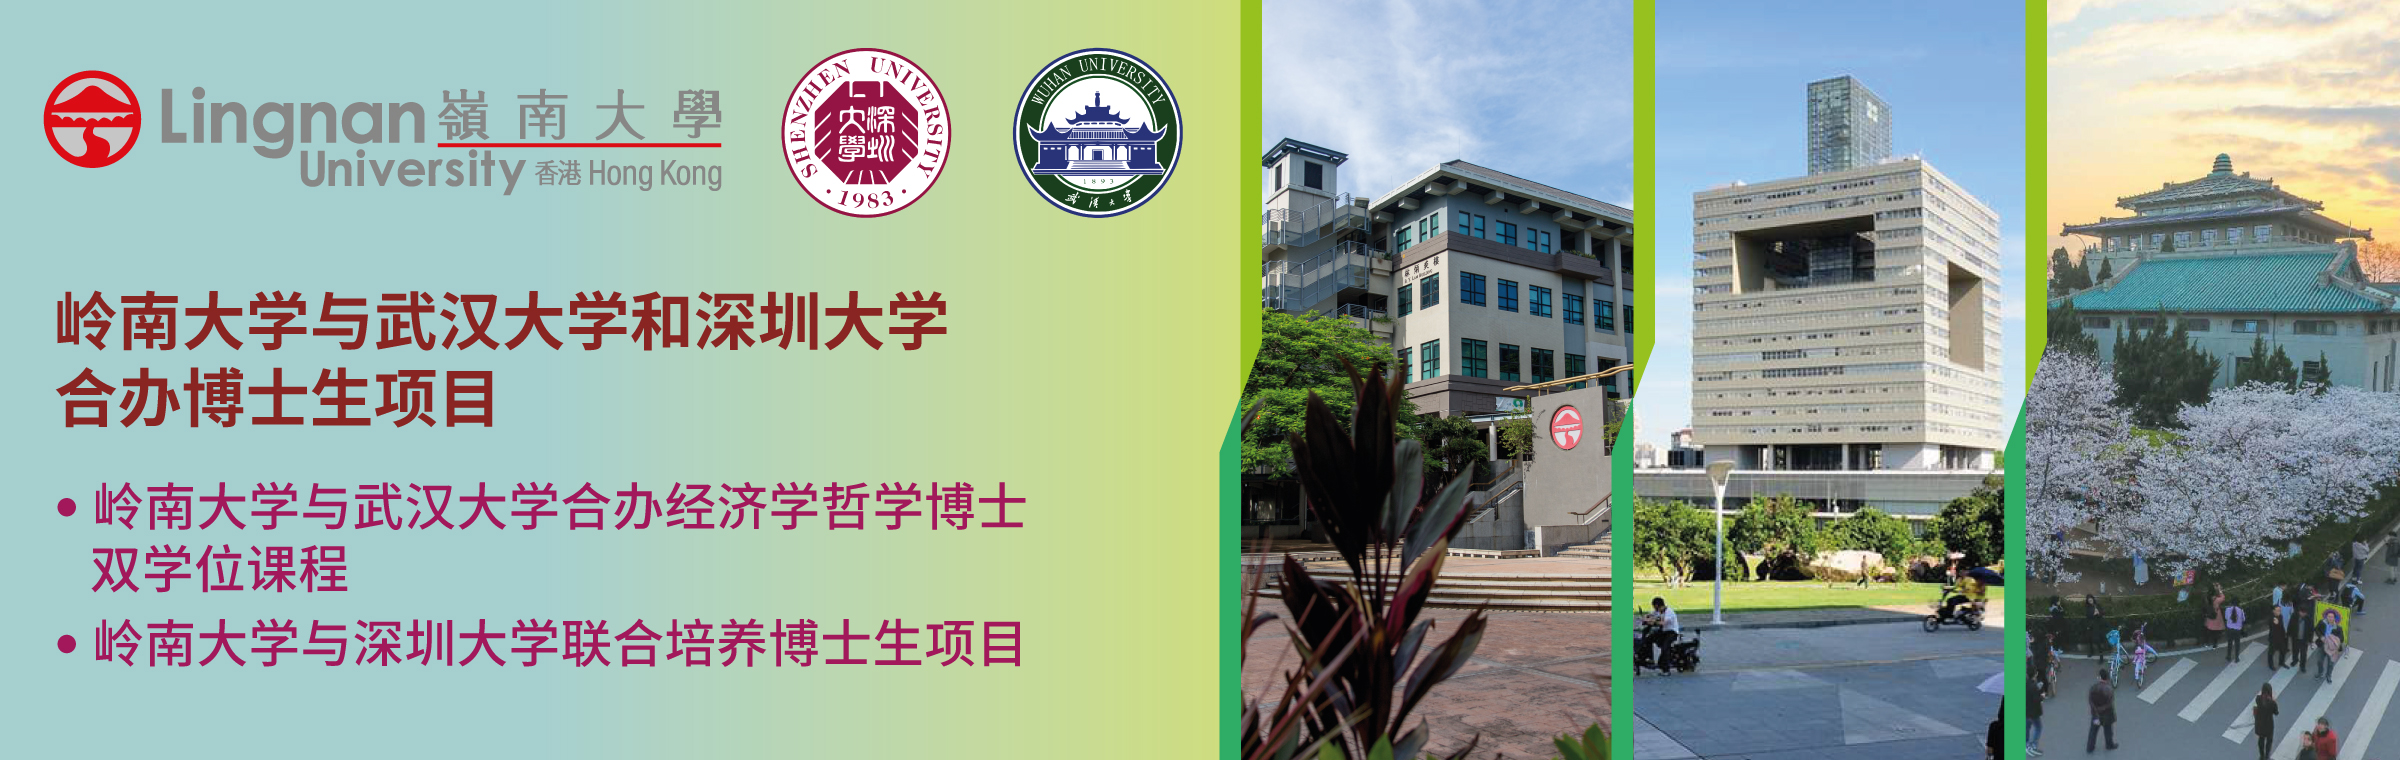 Lingnan Partners with Wuhan University and Shenzhen University for PhD Programmes